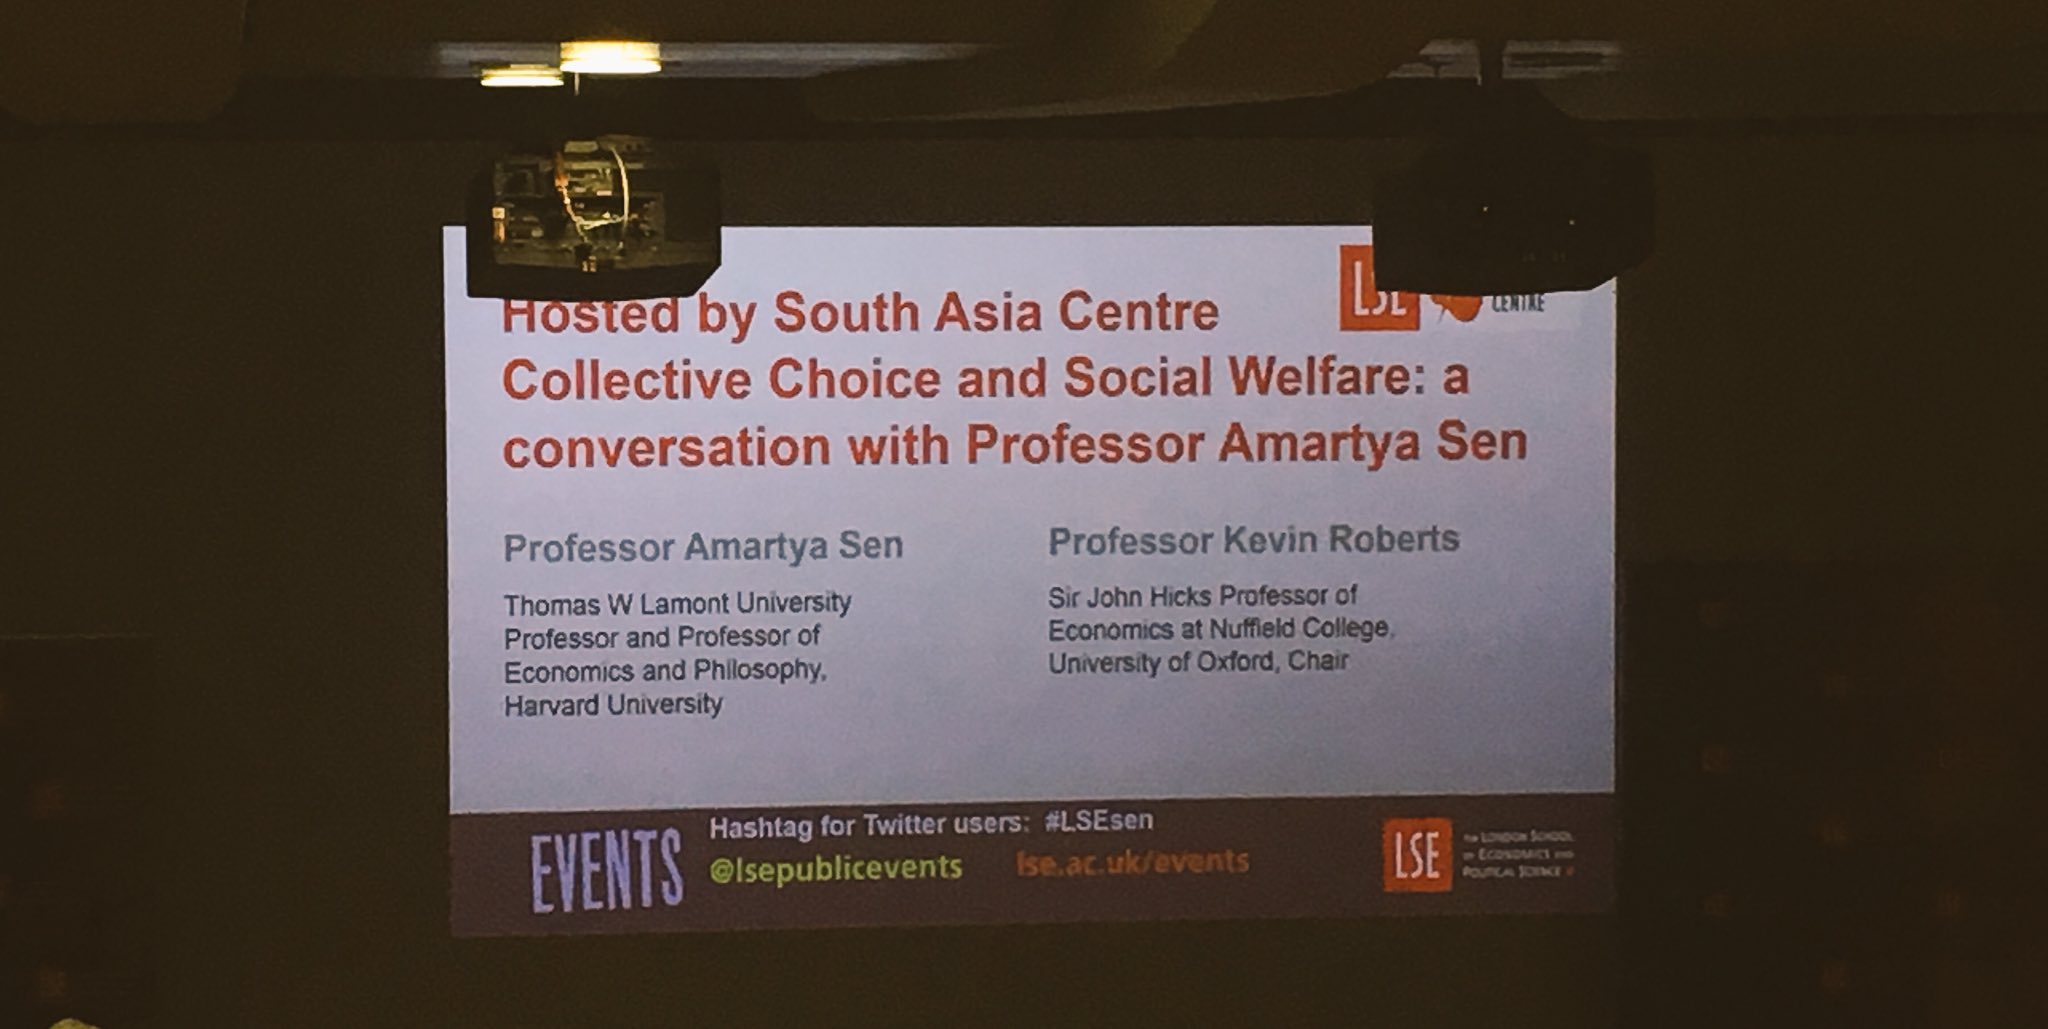 So excited for this talk on collective choice + social welfare with Professor Amartya Sen! #LSEsen https://t.co/XNMKJvh7eE